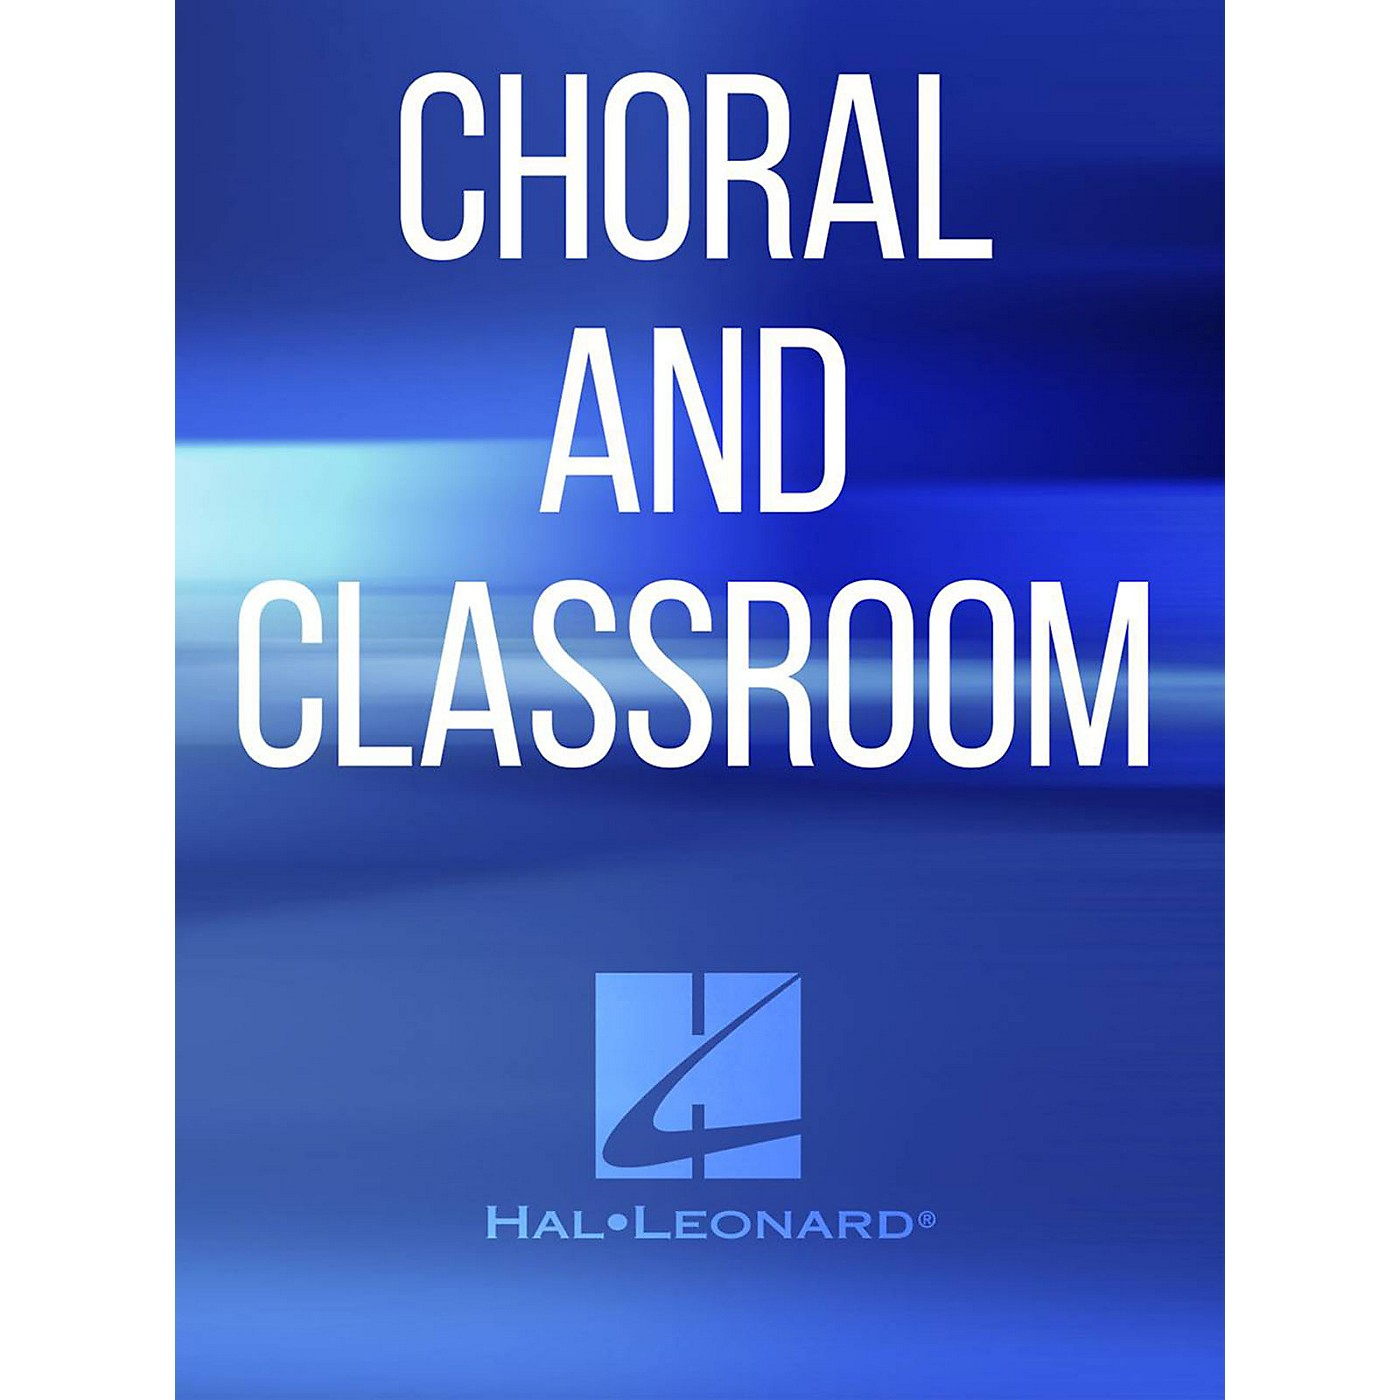 Hal Leonard Lament For A Choral Conductor SATB Composed by Kirke Mechem thumbnail